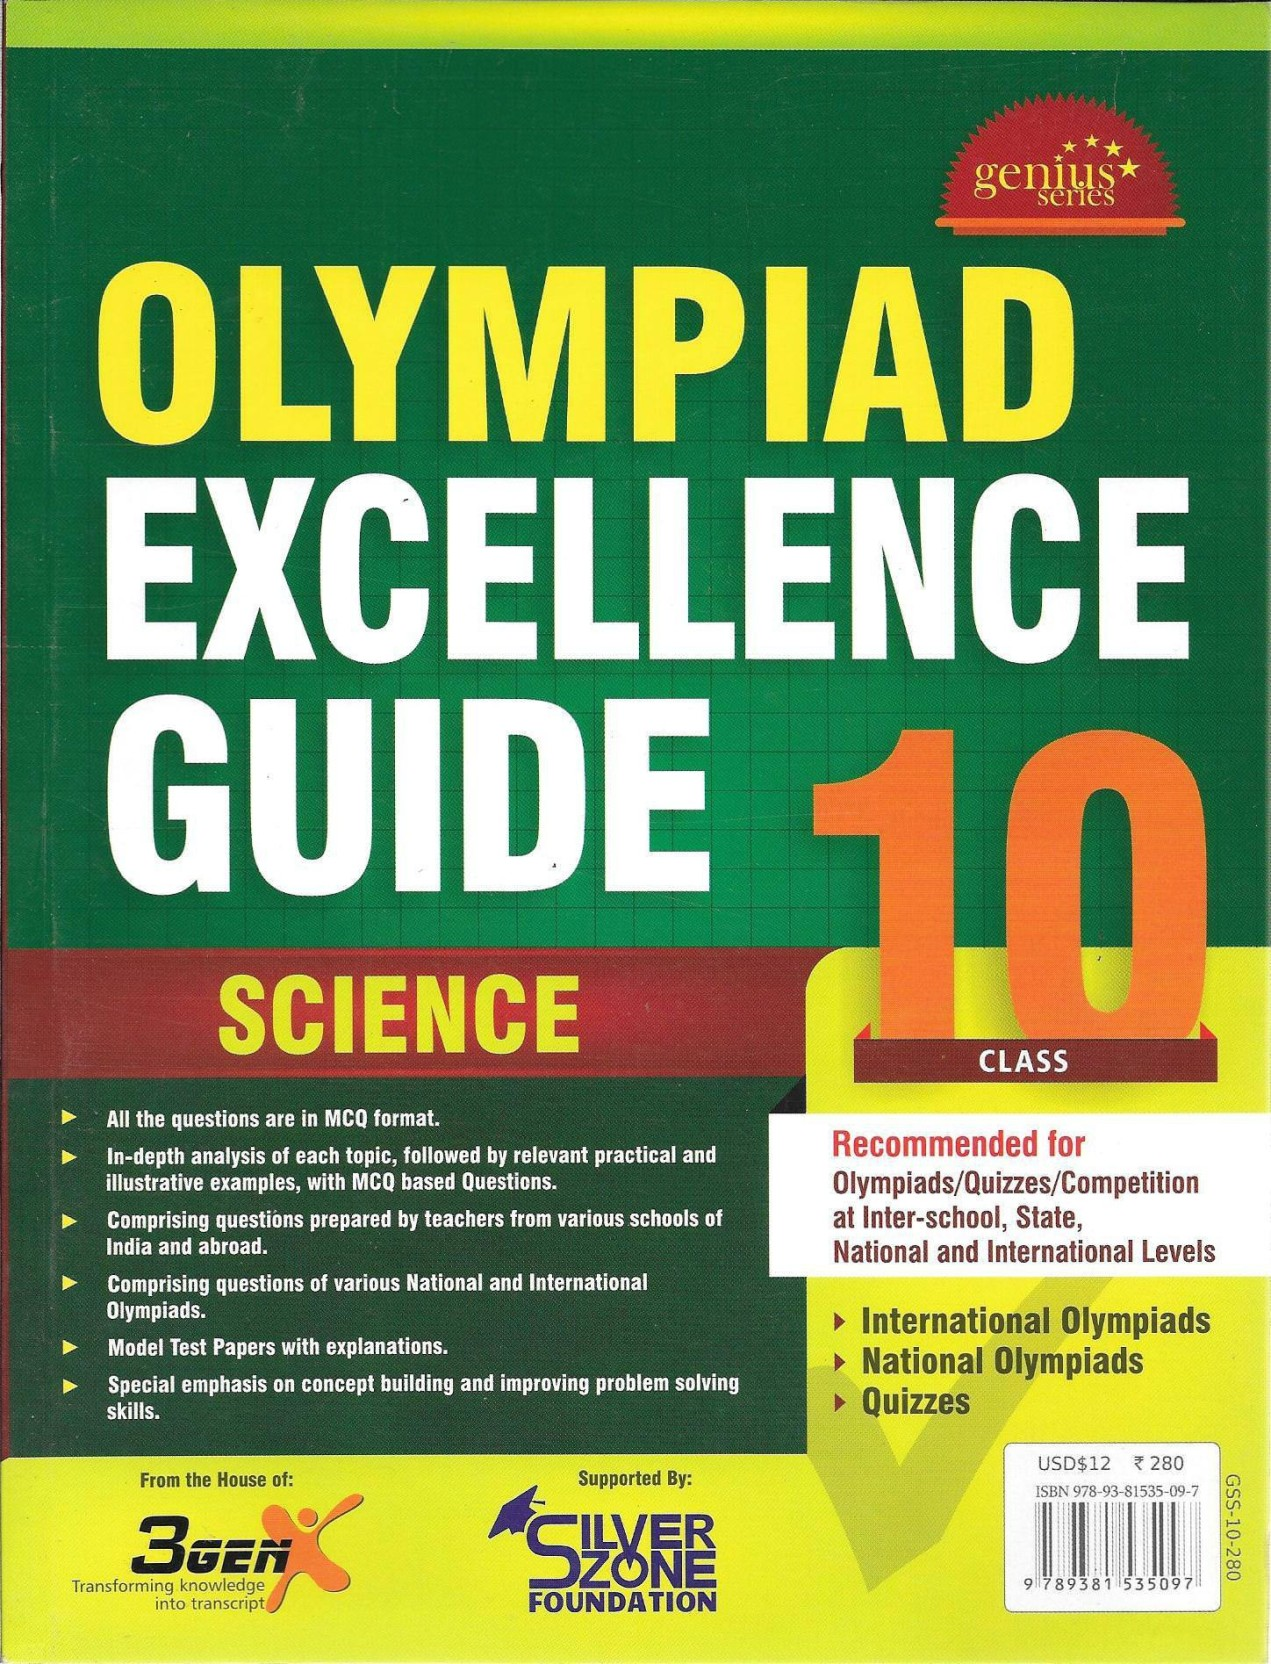 Olympiad Excellence Guide - Science IIT Basics (Class - 10). ADD TO CART